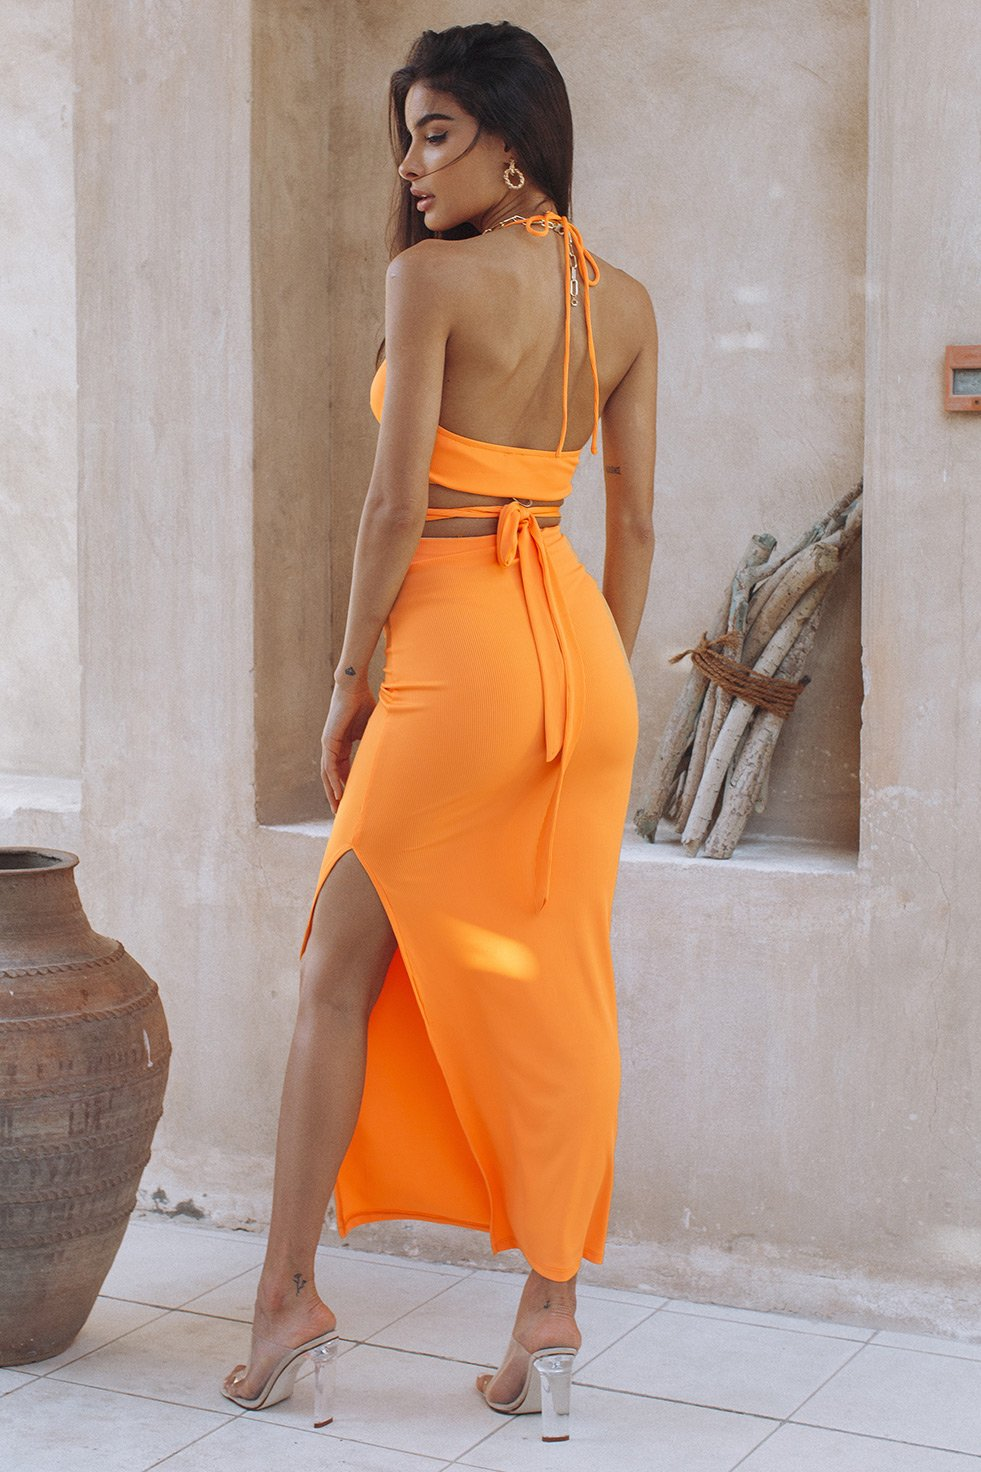 SUNNY DAZE SET - ORANGE (6570665017522)